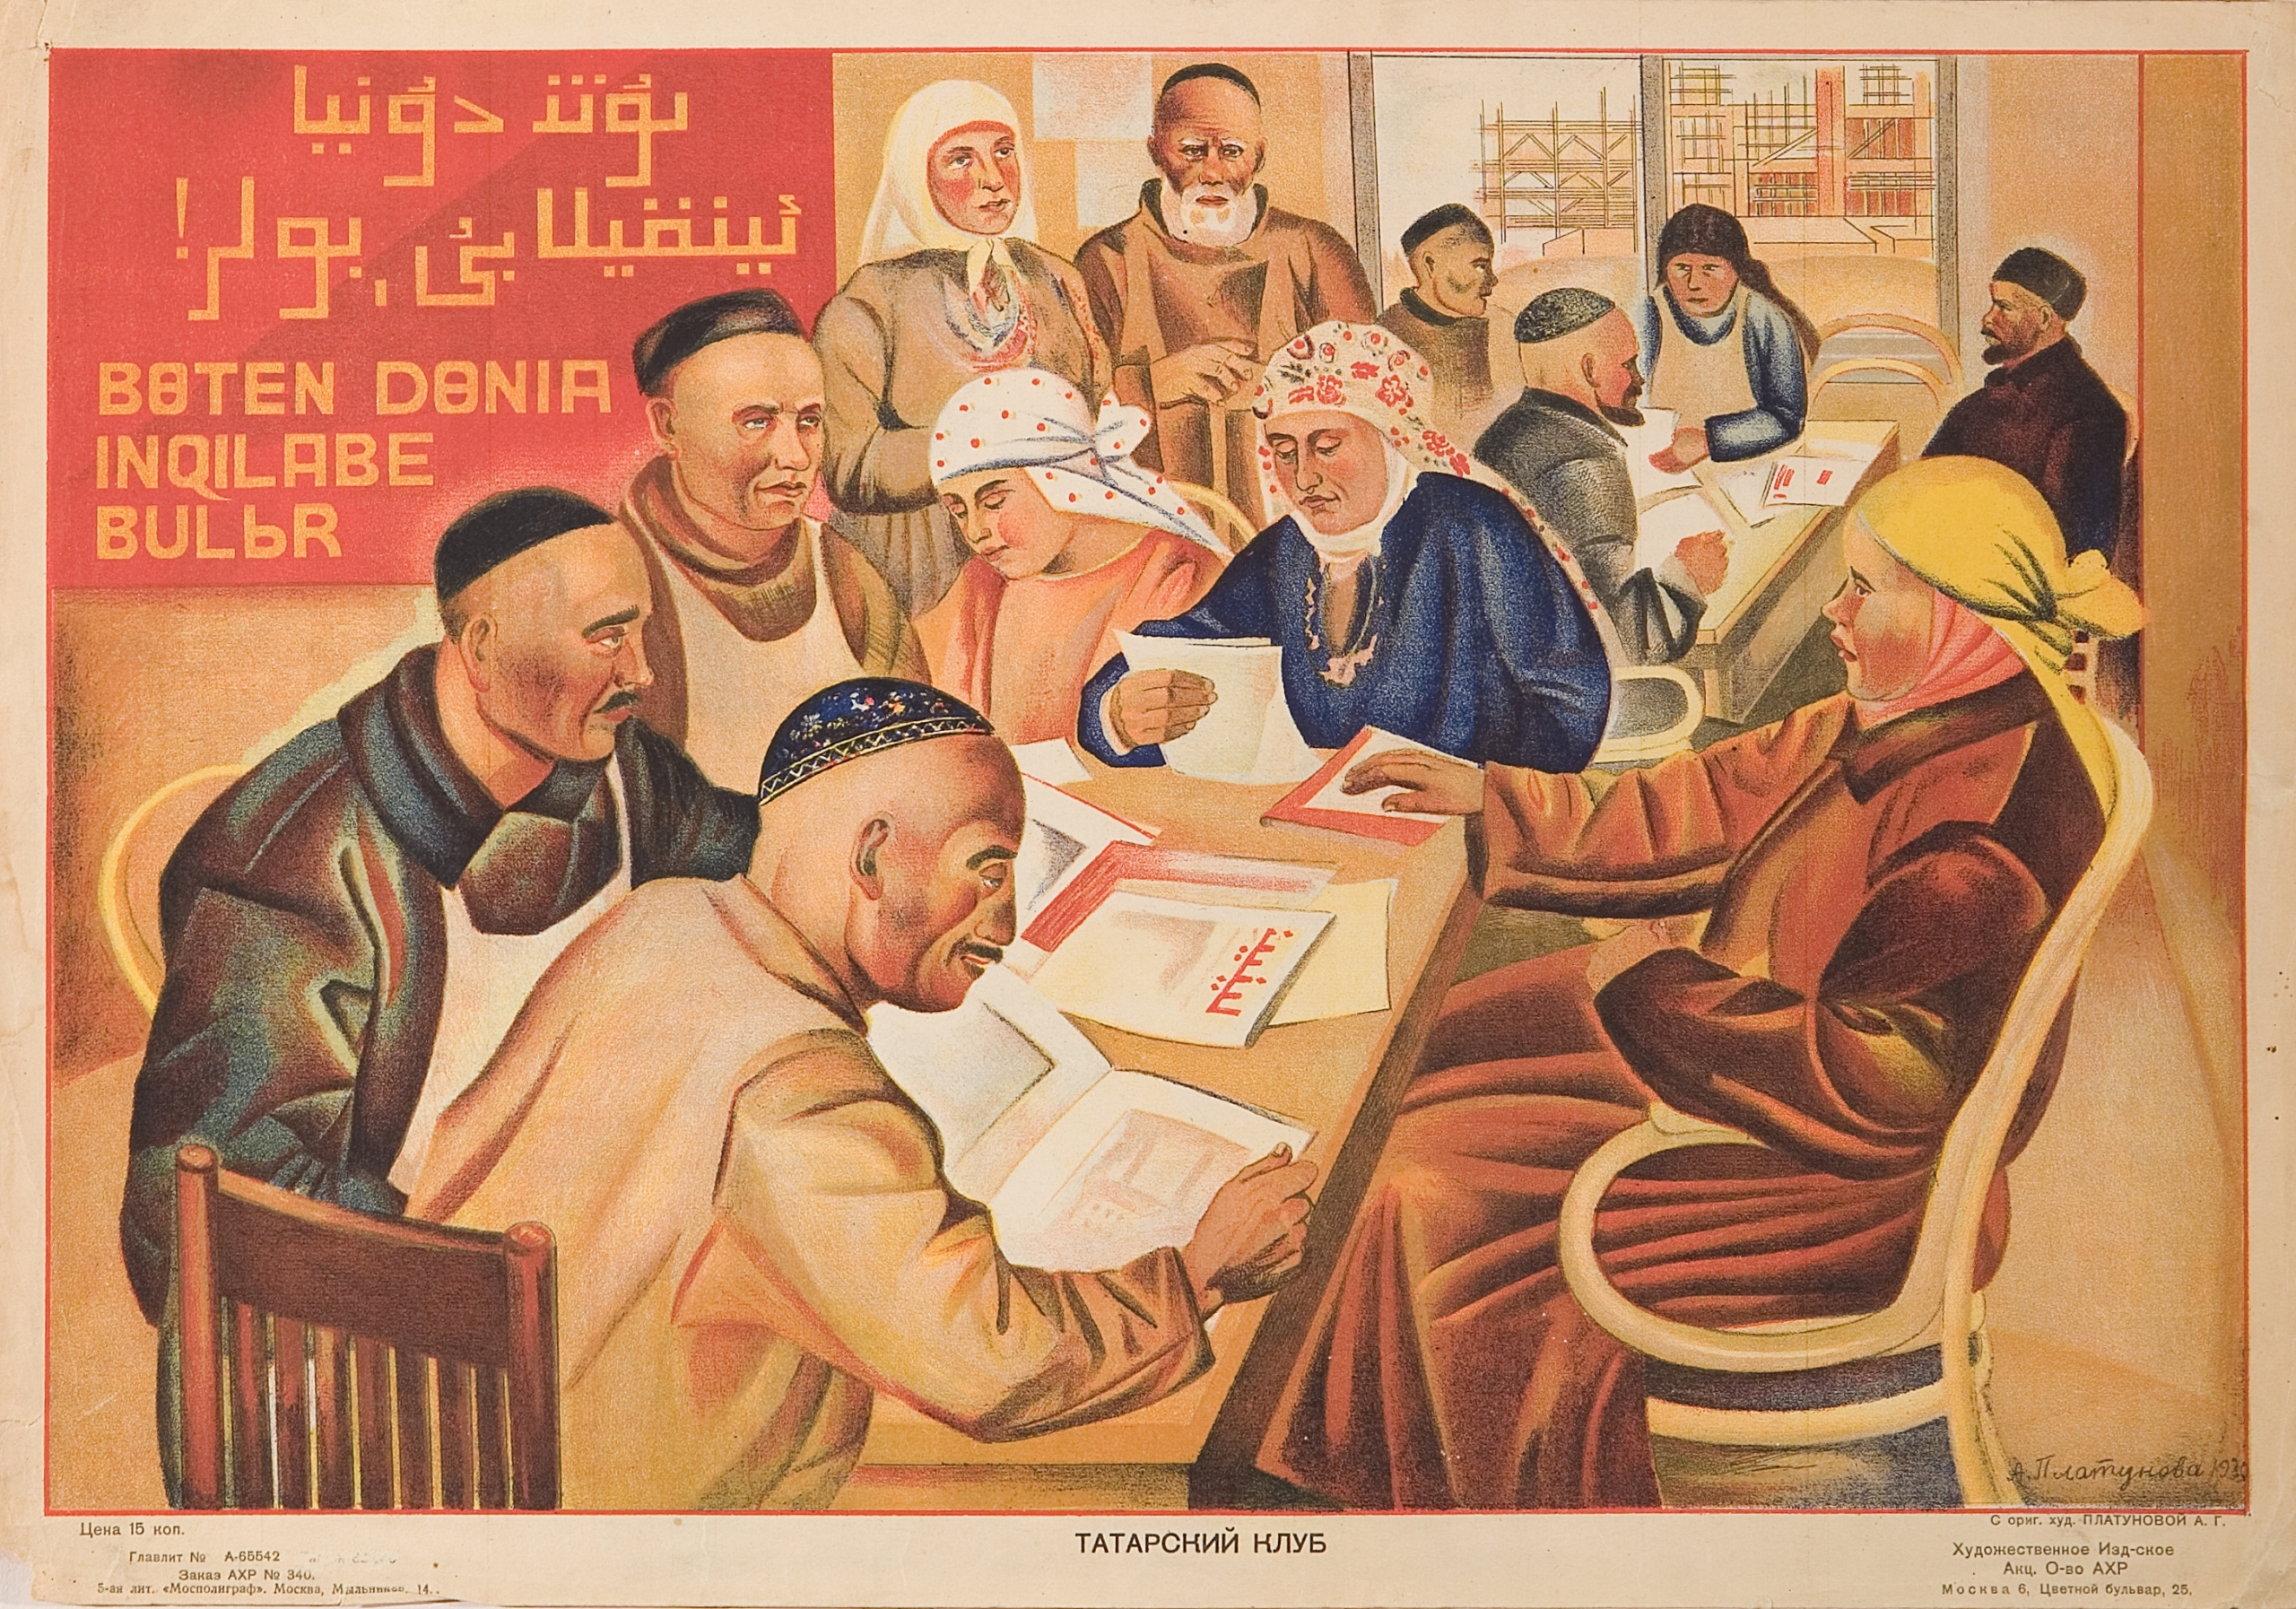 Tatar Club, Arabic and Latin script, Moscow, 1935